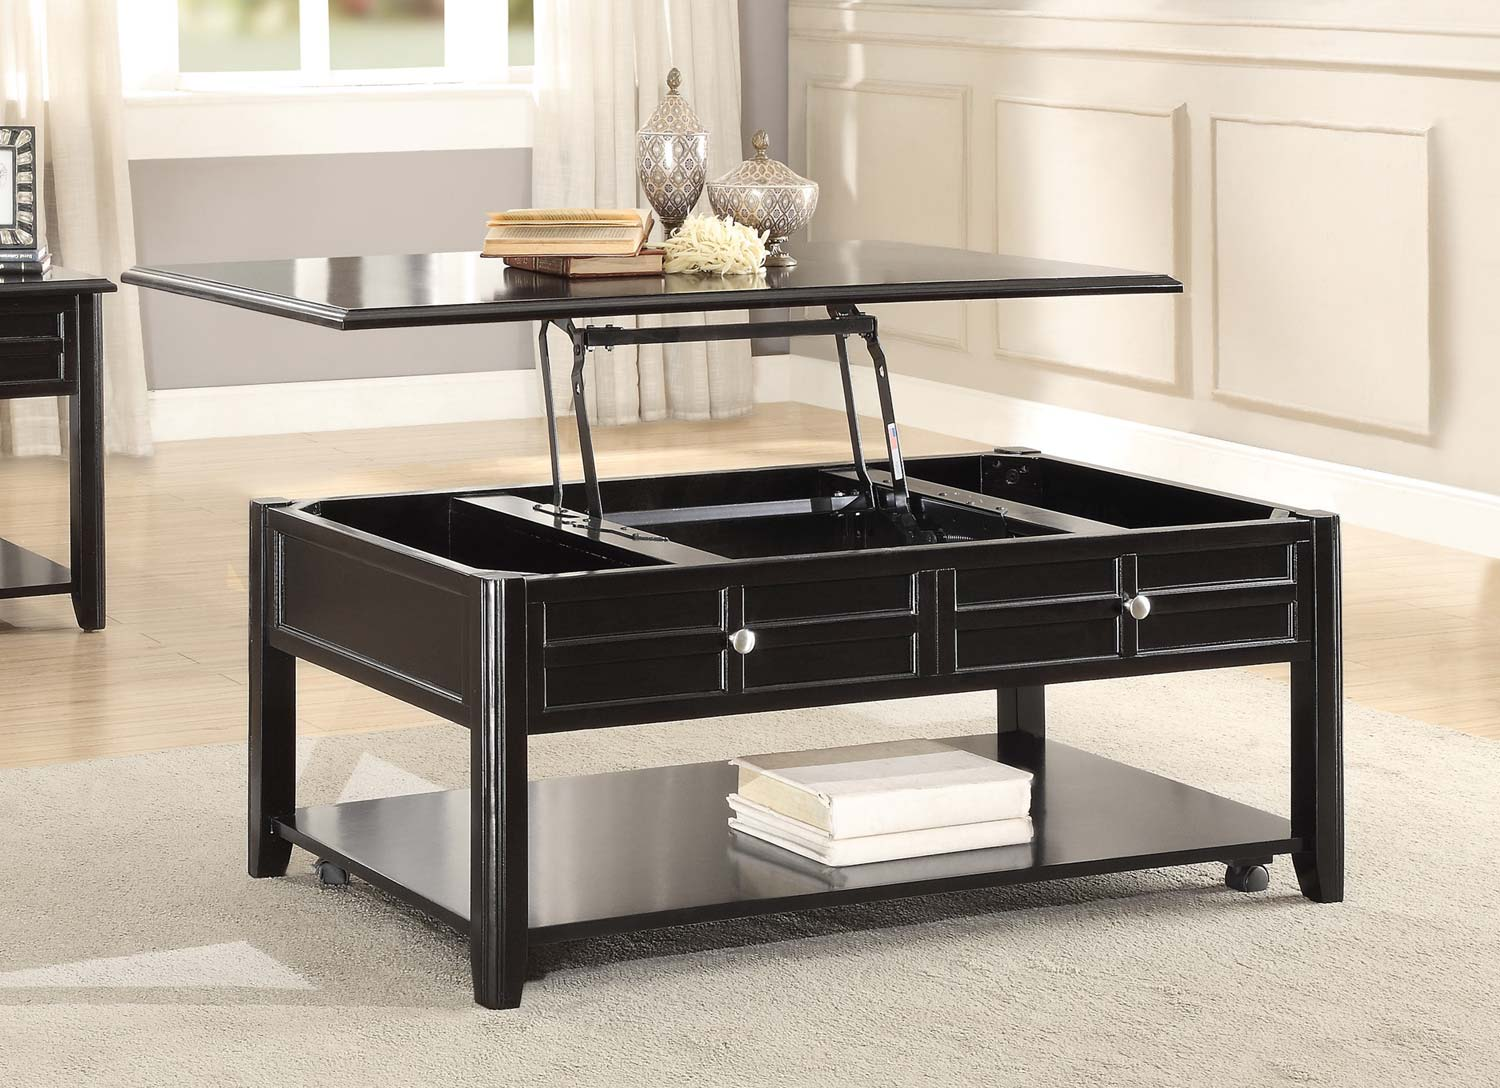 Enjoyable Home Elegance Carrier Cocktail Table With Lift Top On Casters Cjindustries Chair Design For Home Cjindustriesco